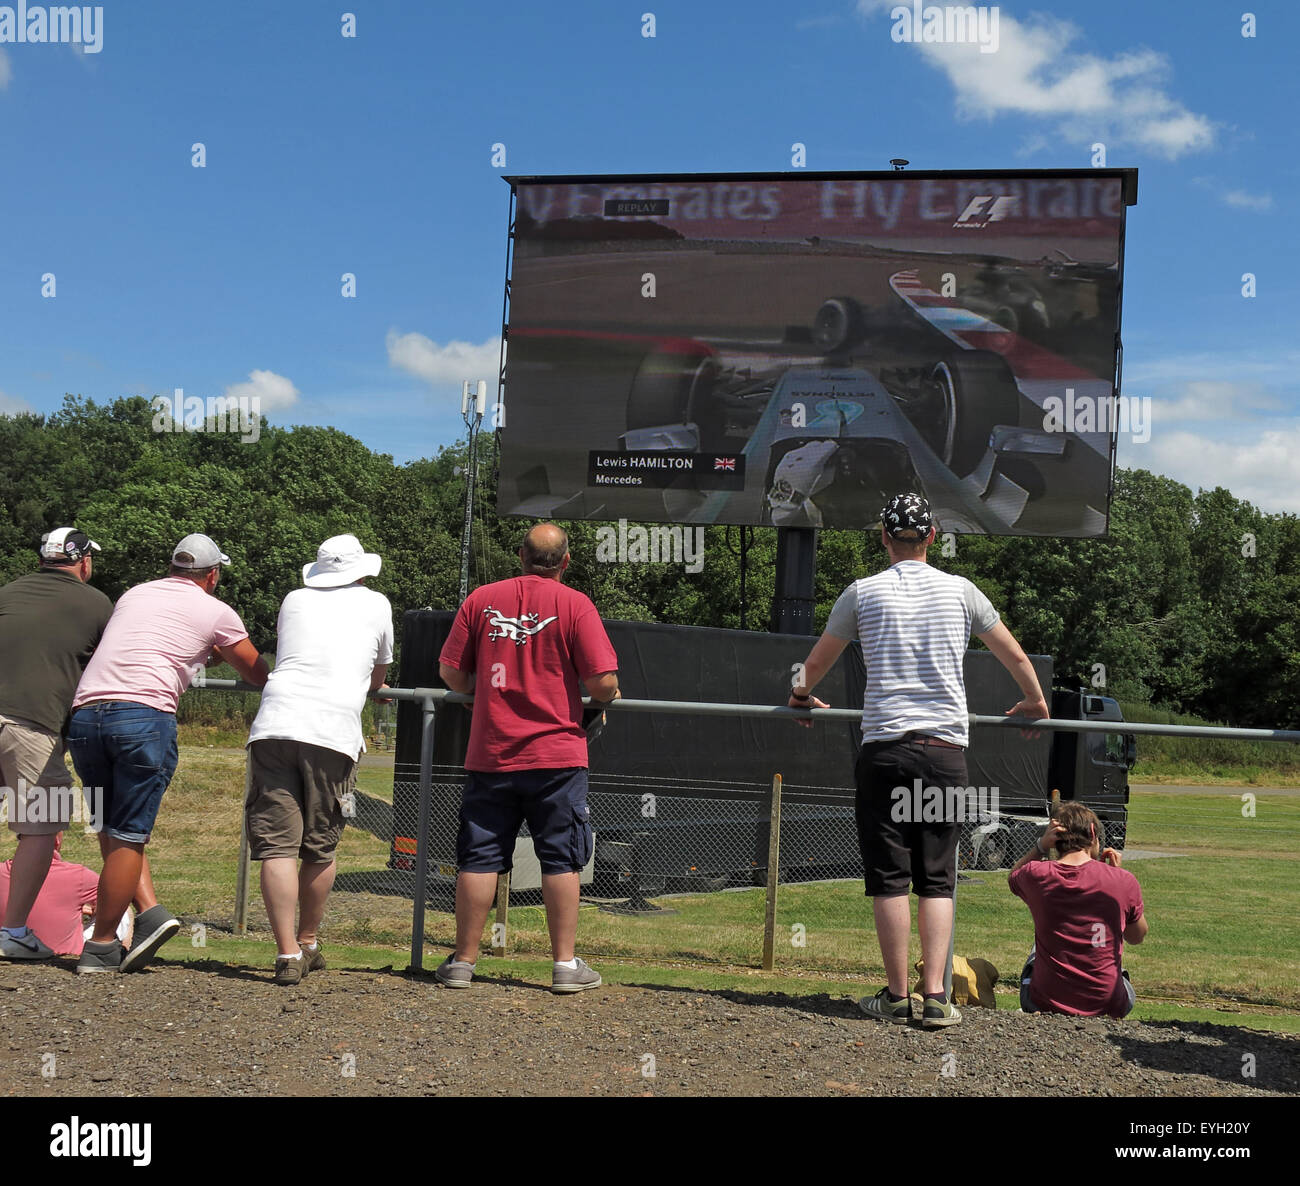 Silverstone F1 British Grand Prix GP England,fans watching Lewis Hamilton qualifying on a large screen Stock Photo